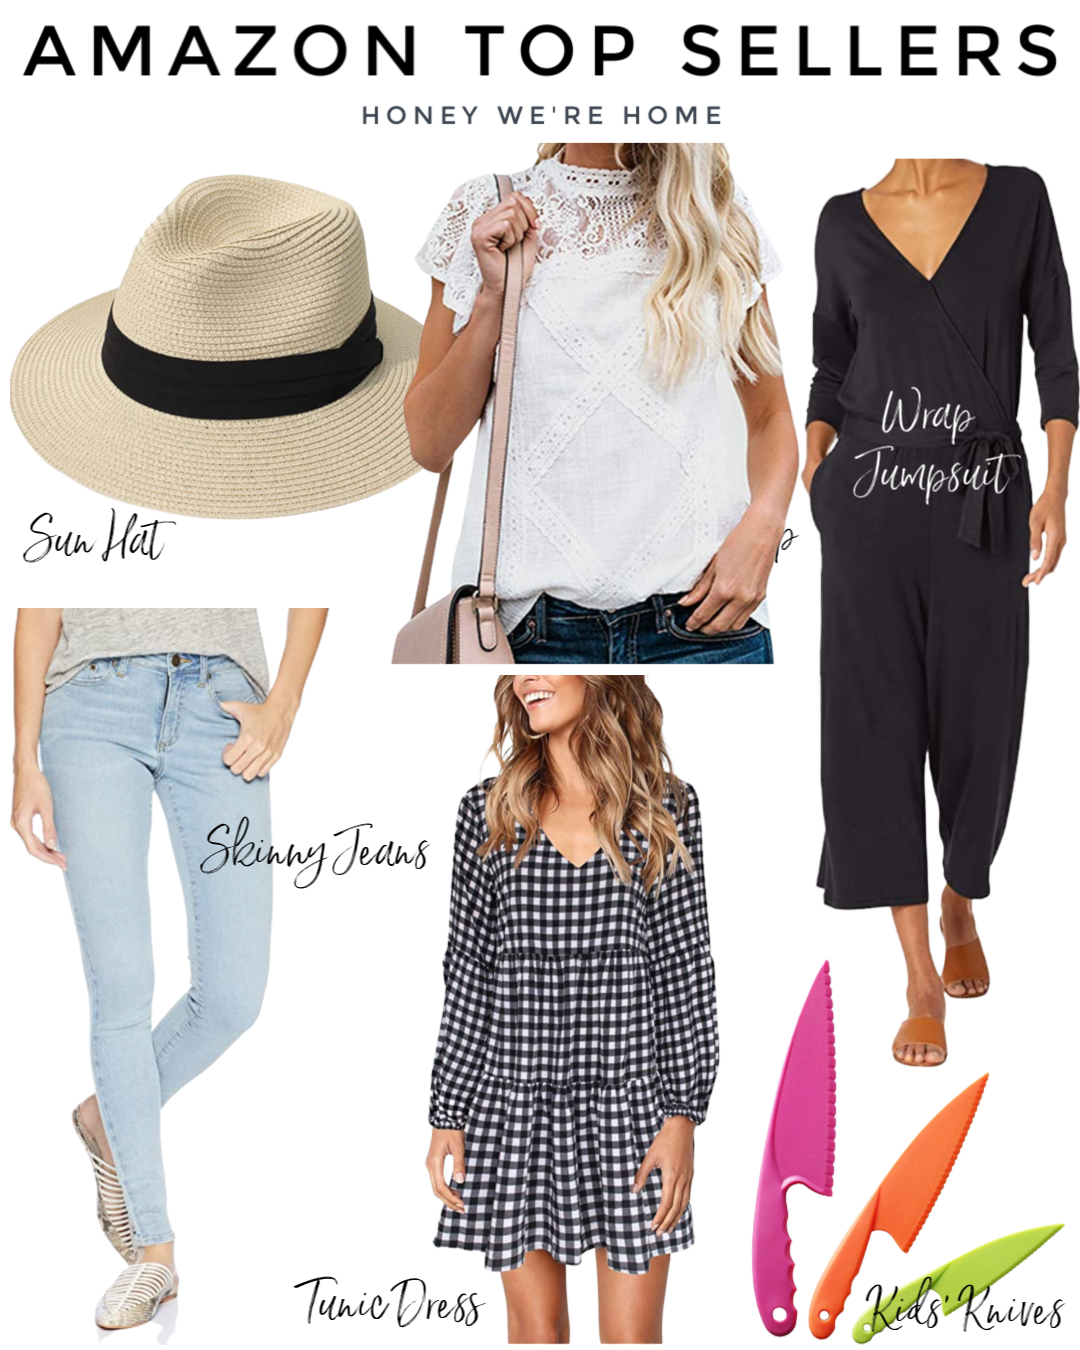 Amazon Top Sellers, Sun Hat, Skinny Jeans, Lace Top, Wrap Jumpsuit, Gingham Boho Dress, Kids Knives